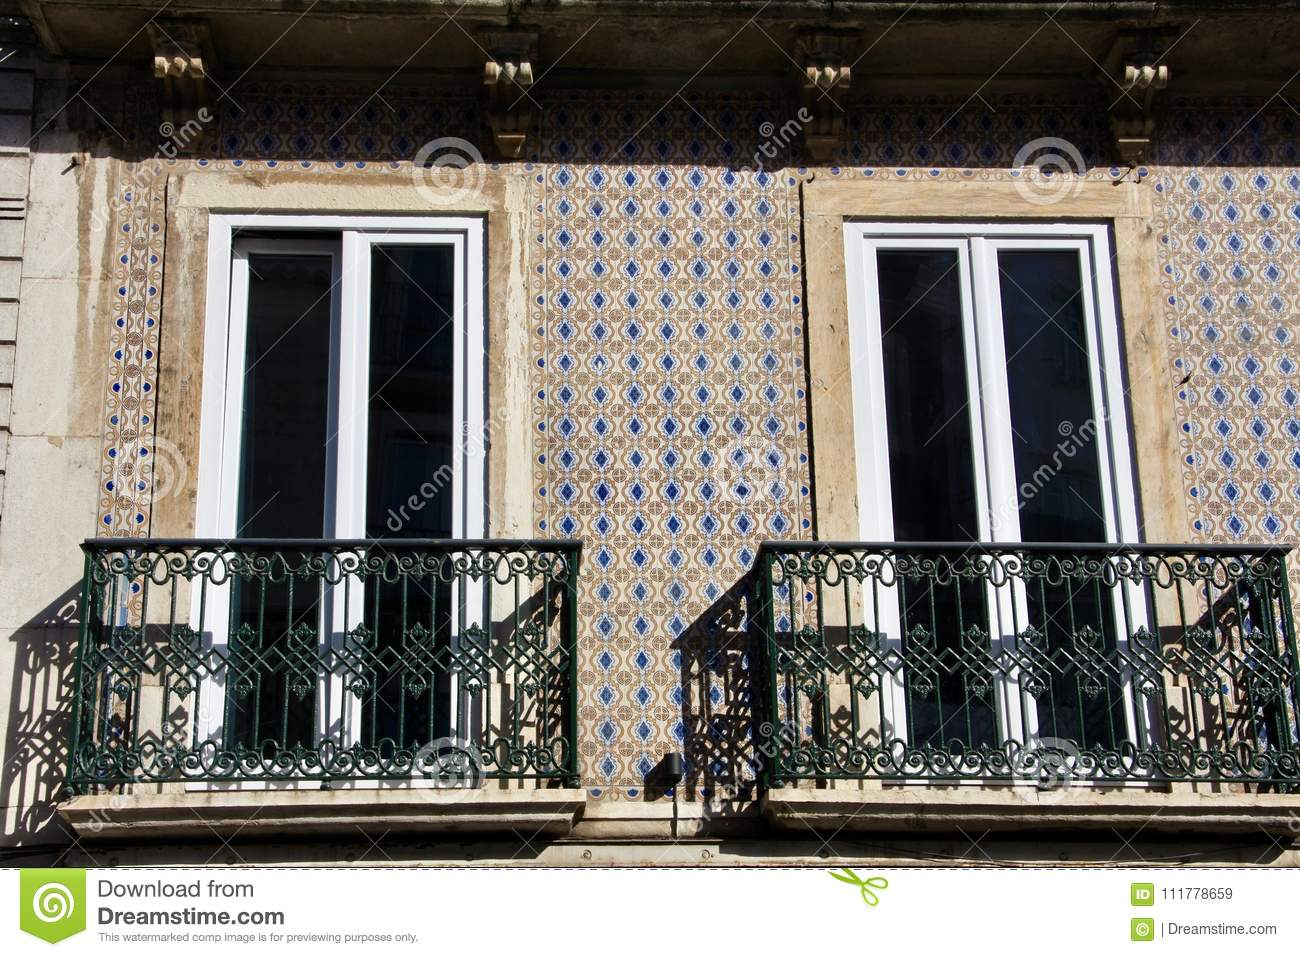 Two balconies on tiled by azulejo facade of building in Lisbon .